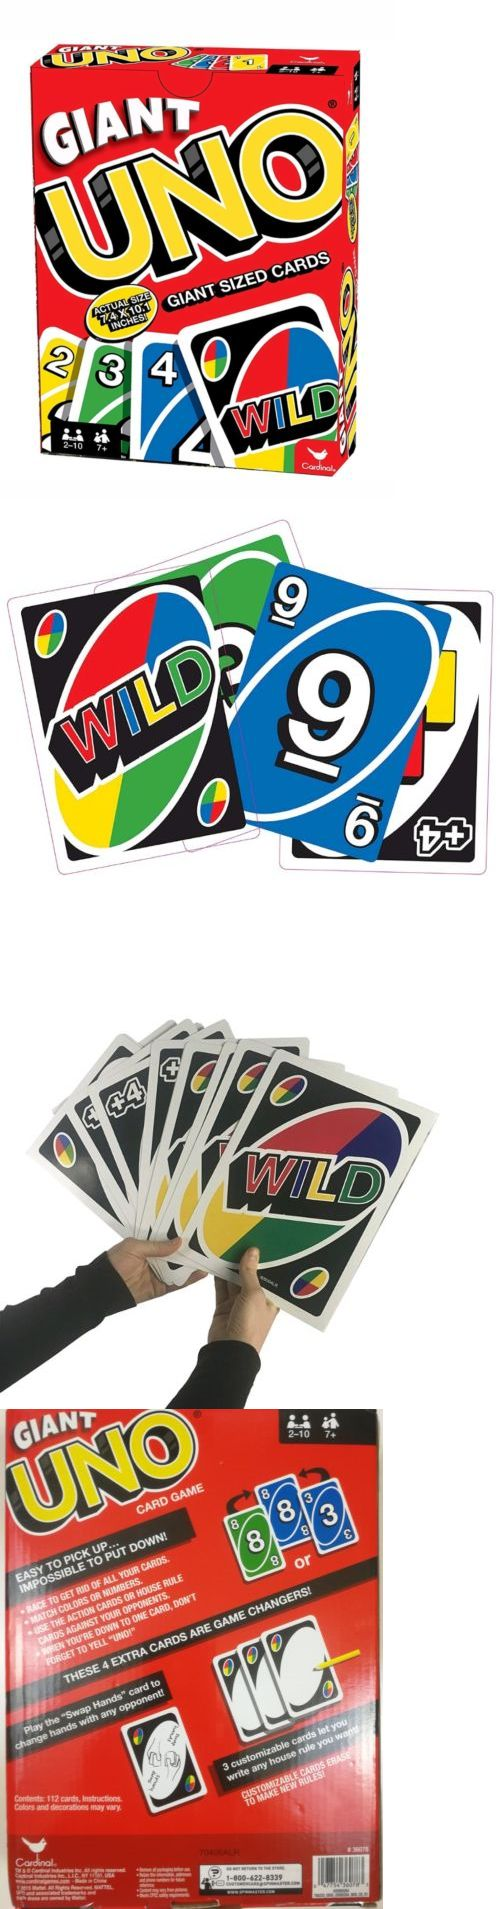 Card Games-Contemporary 19082: New Giant Uno Cards Novelty Jumbo Uno Card Game 10 1 2 + 3 Bonus Wild Blanks -> BUY IT NOW ONLY: $49 on eBay!